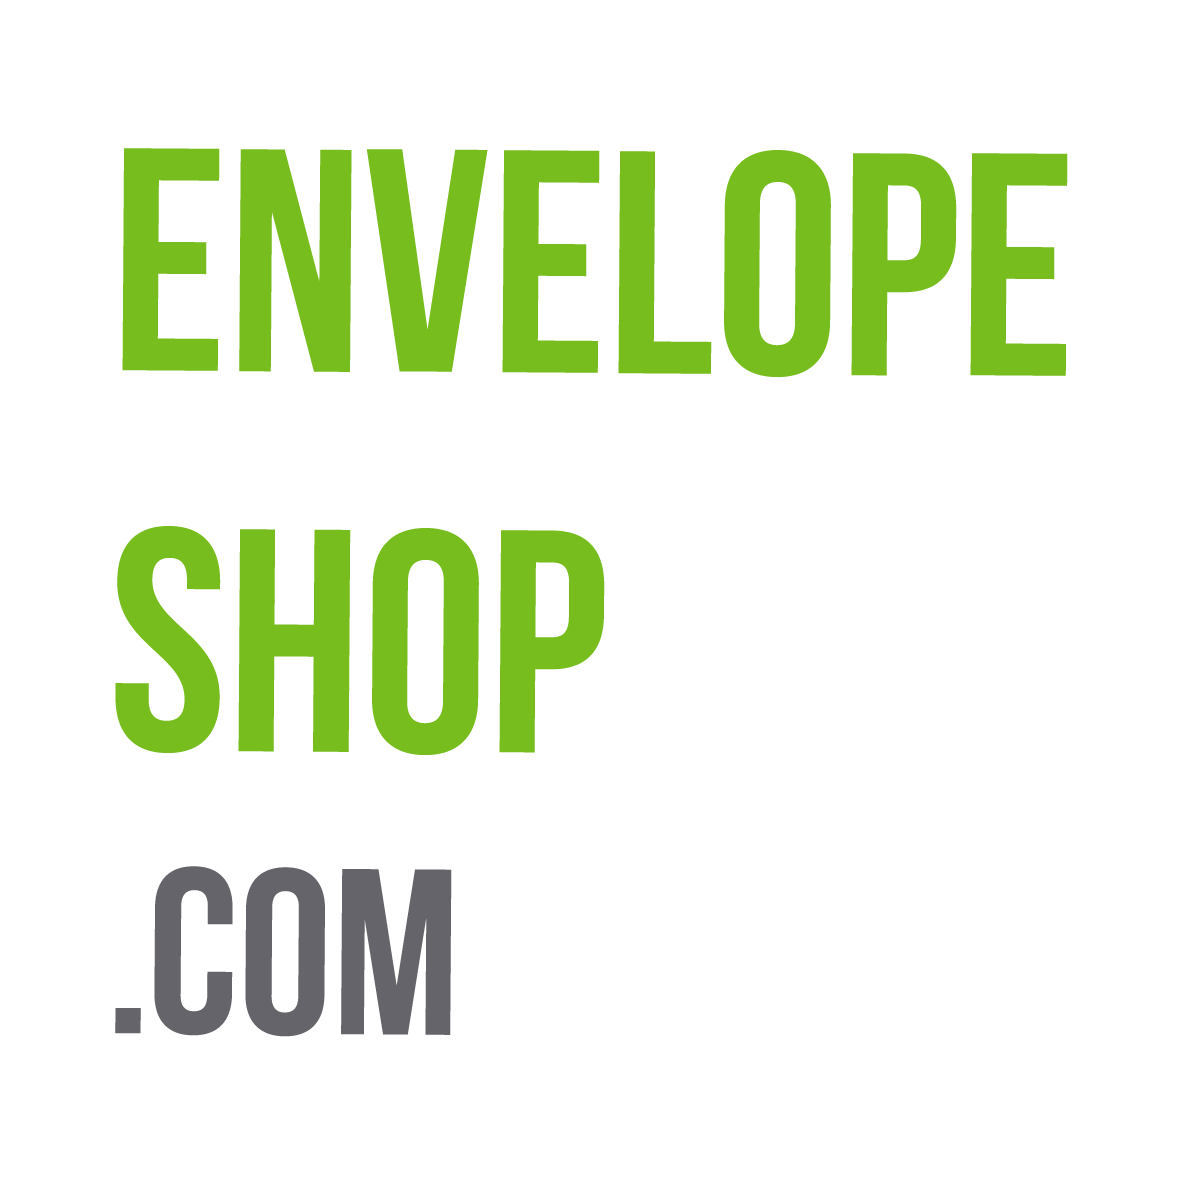 Envelopeshop.com